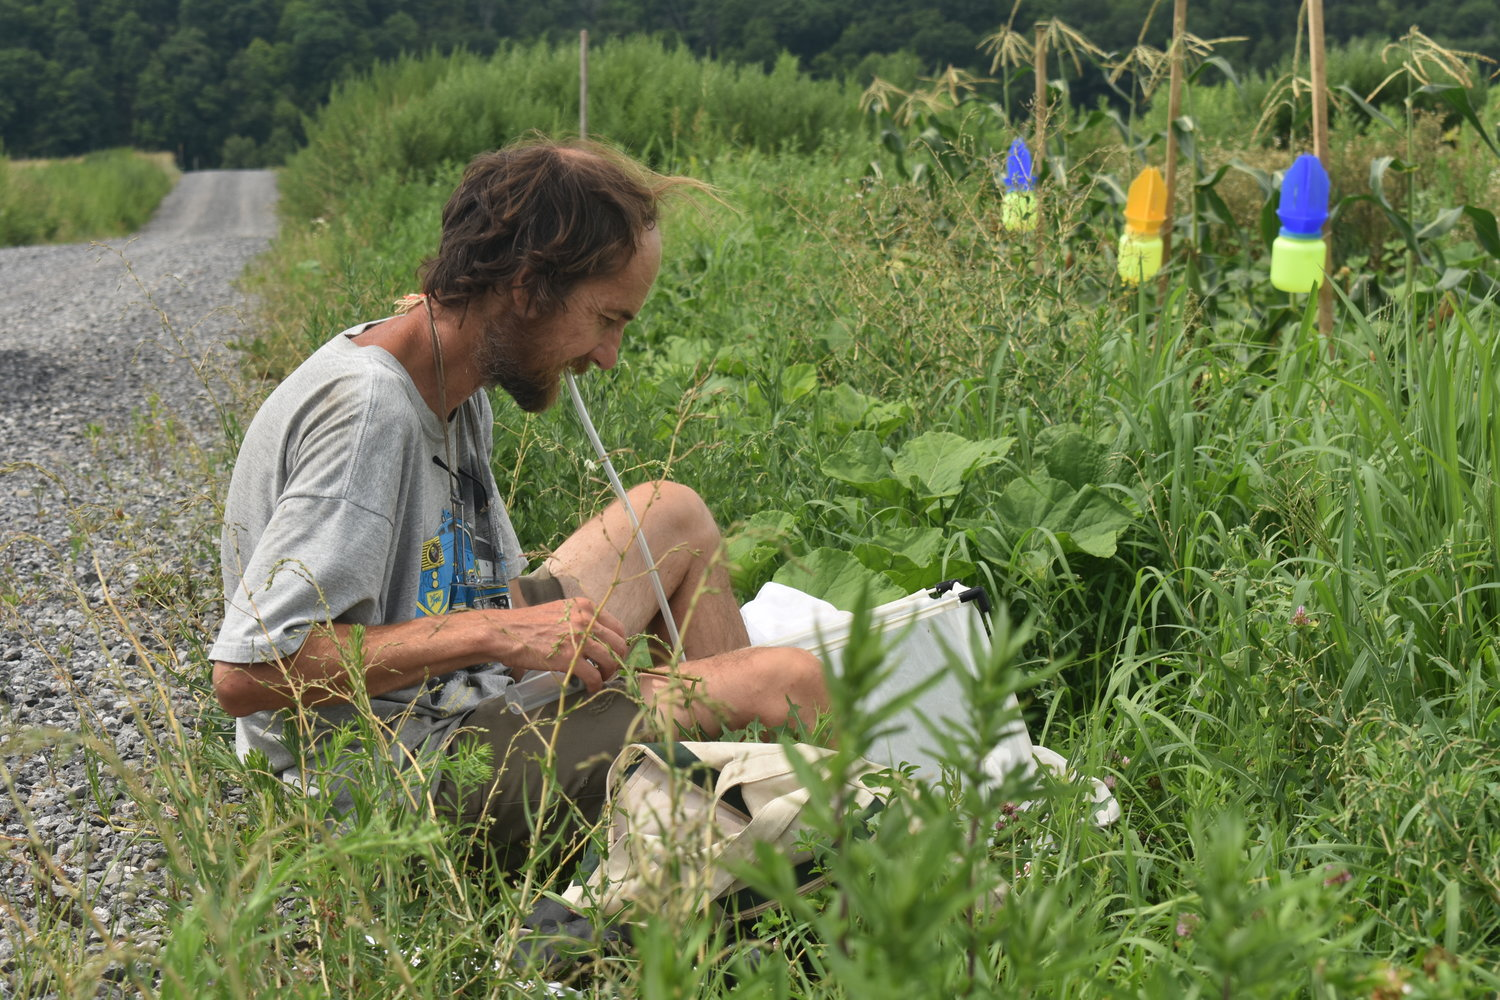 Conrad Vispo of Hawthorne Valley is the lead researcher for the Native Meadow Trial at the Hudson Valley Farm Hub in September 2021.